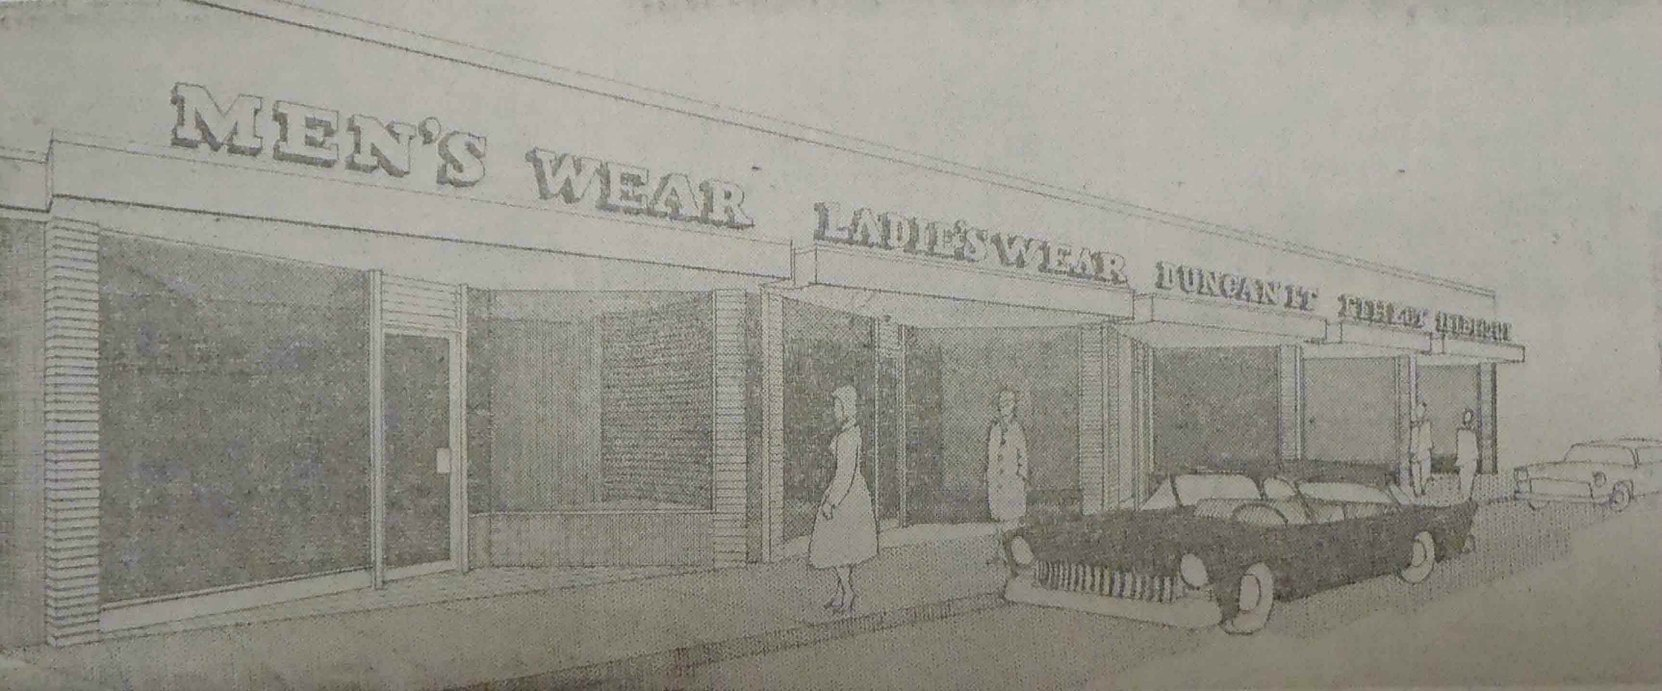 1959 pre-construction drawing of the building at 33-53 Station Street.